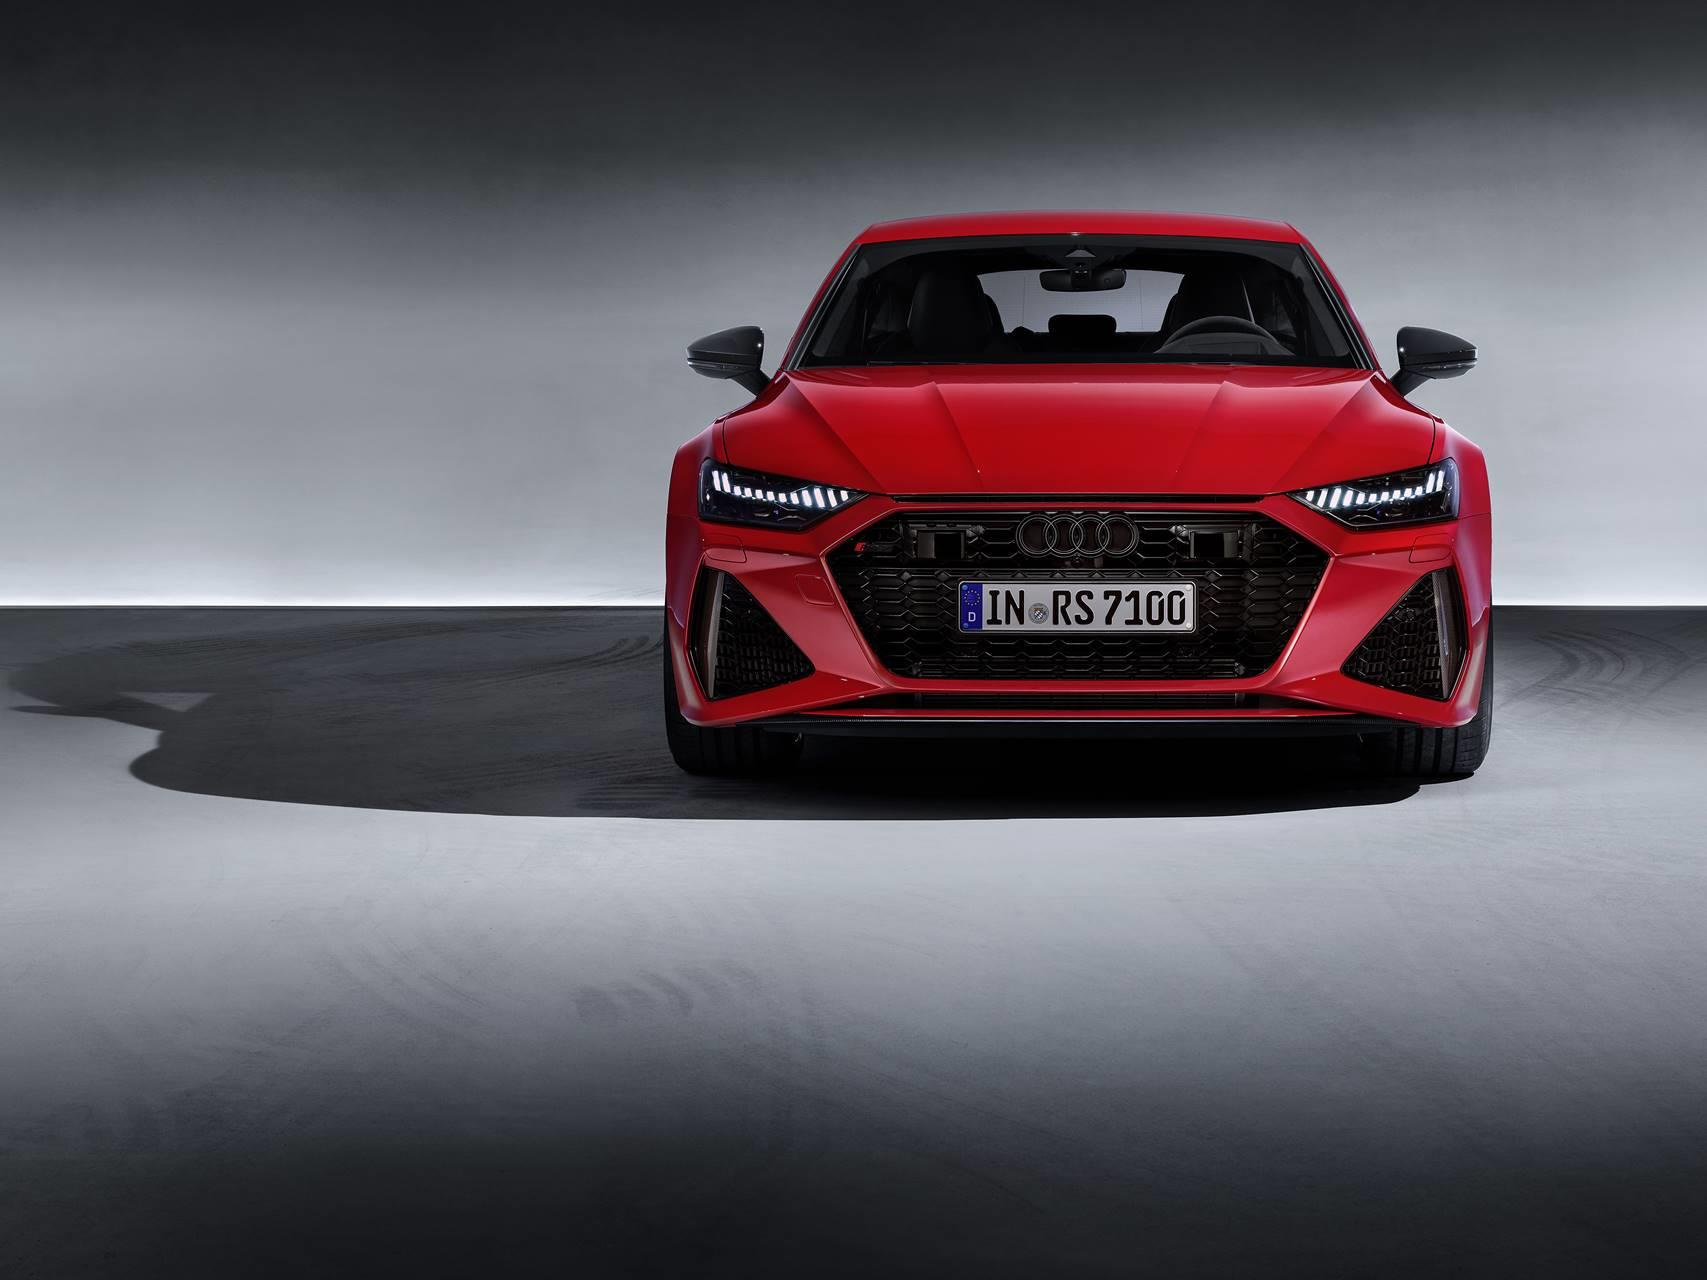 2020 Audi Rs Audi Rs7 2020 Front 3193473 Hd Wallpaper Backgrounds Download